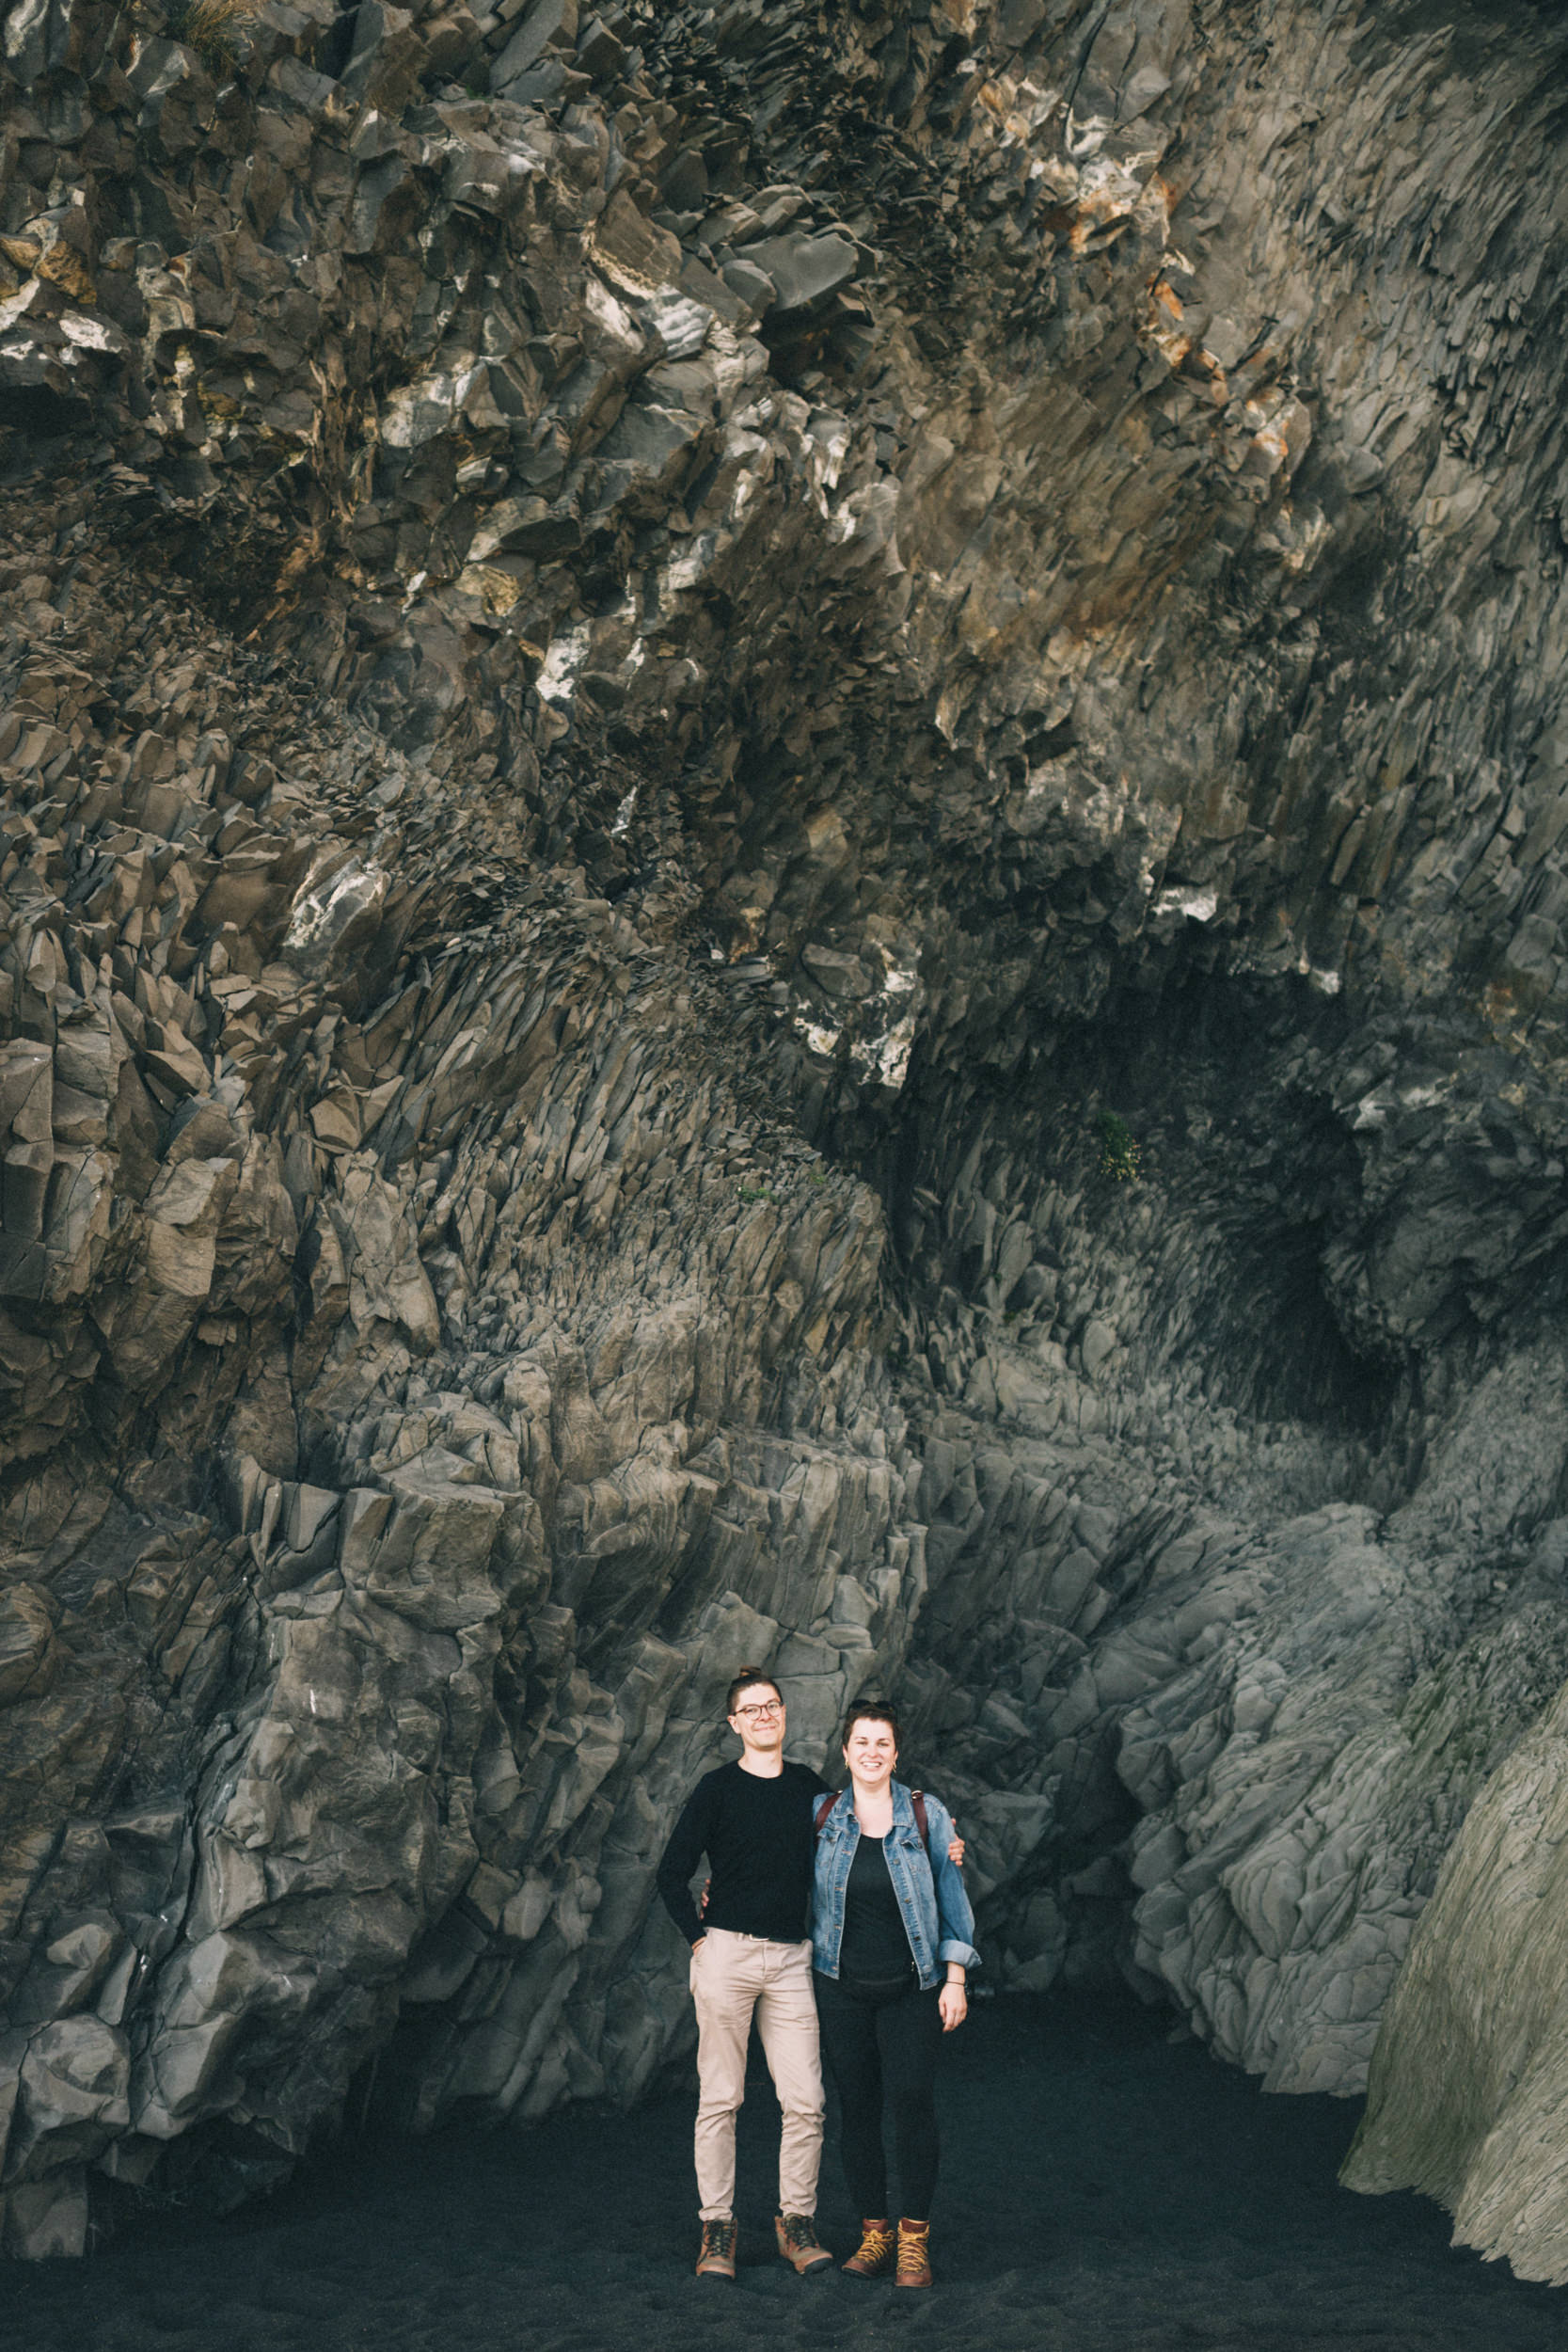 Sarah-Katherine-Davis-Photography-Iceland-Adventure-Elopement-Photographer-Louisville-Kentucky-Wedding-Photographer-Travel-Vik-Beach-Engagement-Session-Red-Dress-Reynisfjara-142edit.jpg